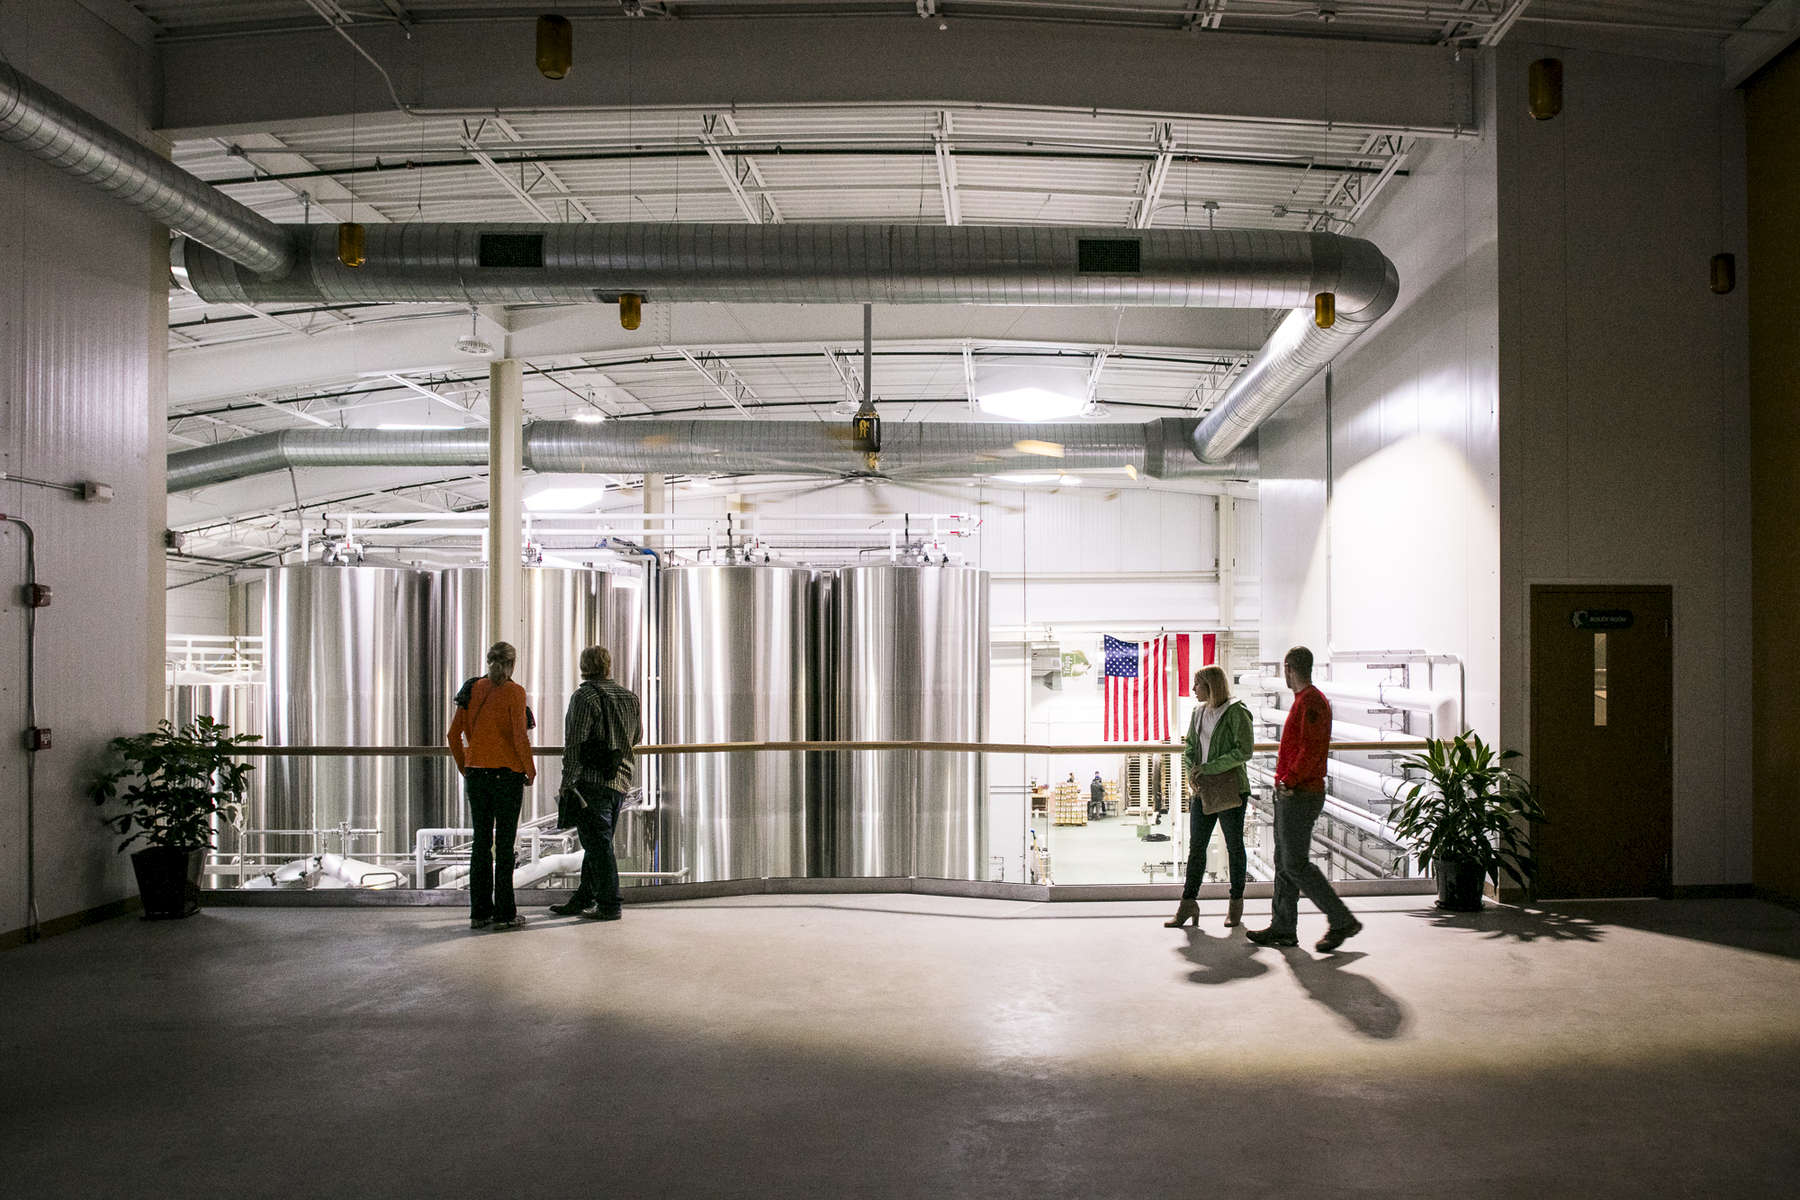 Tourists and beer nerds alike stand in front of massive brewery tanks in Vermont.